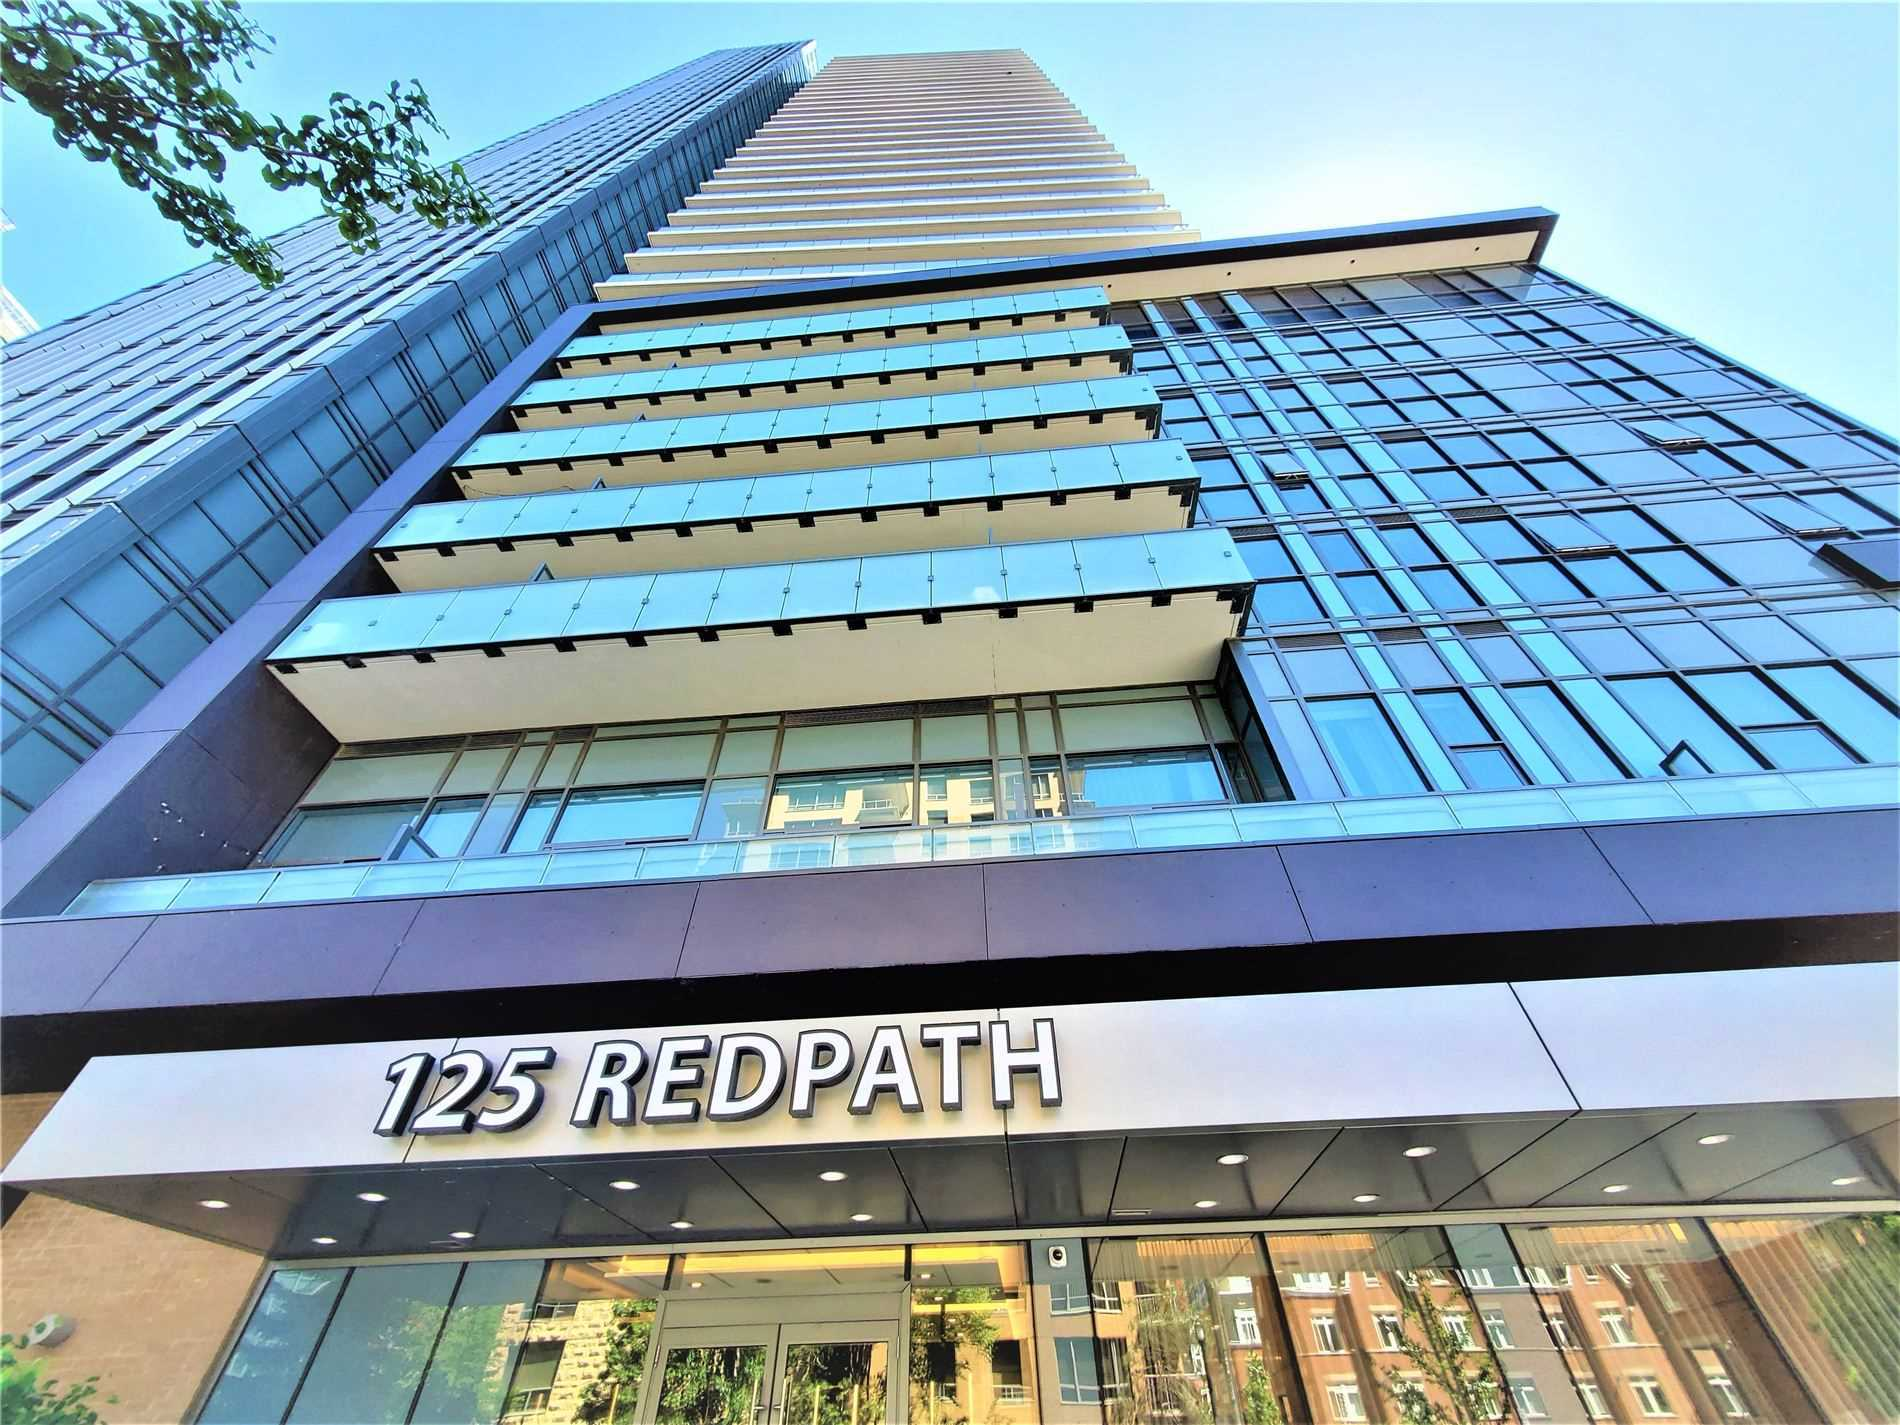 125 Redpath Ave, Toronto, Ontario M4S2J9, 3 Rooms Rooms,1 BathroomBathrooms,Condo Apt,For Sale,Redpath,C4814549